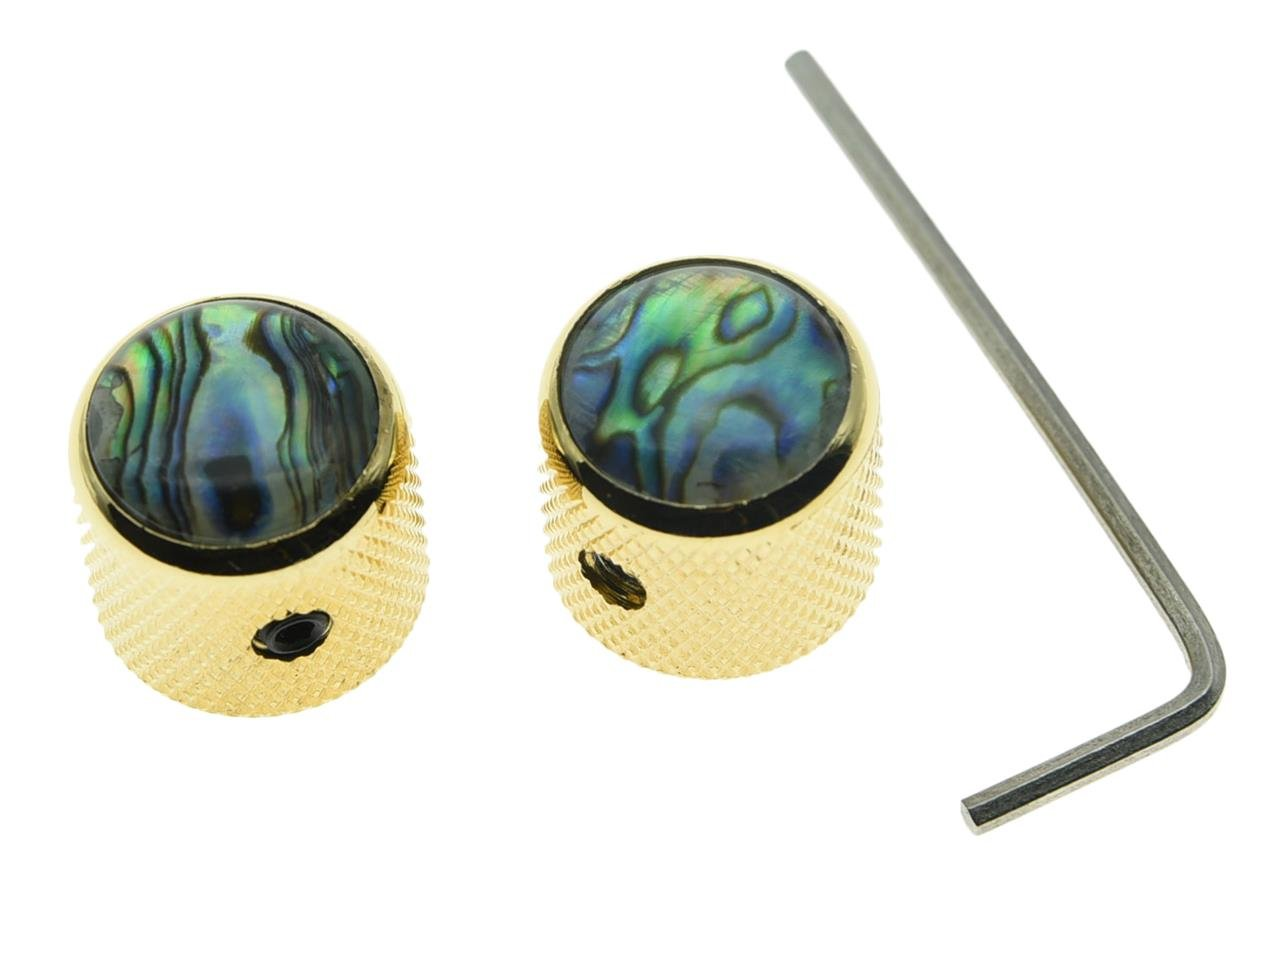 Dopro 2pcs Gold Tele Telecaster Abalone Top Guitar Dome Knobs Bass Knobs with Set Screw and Wrench